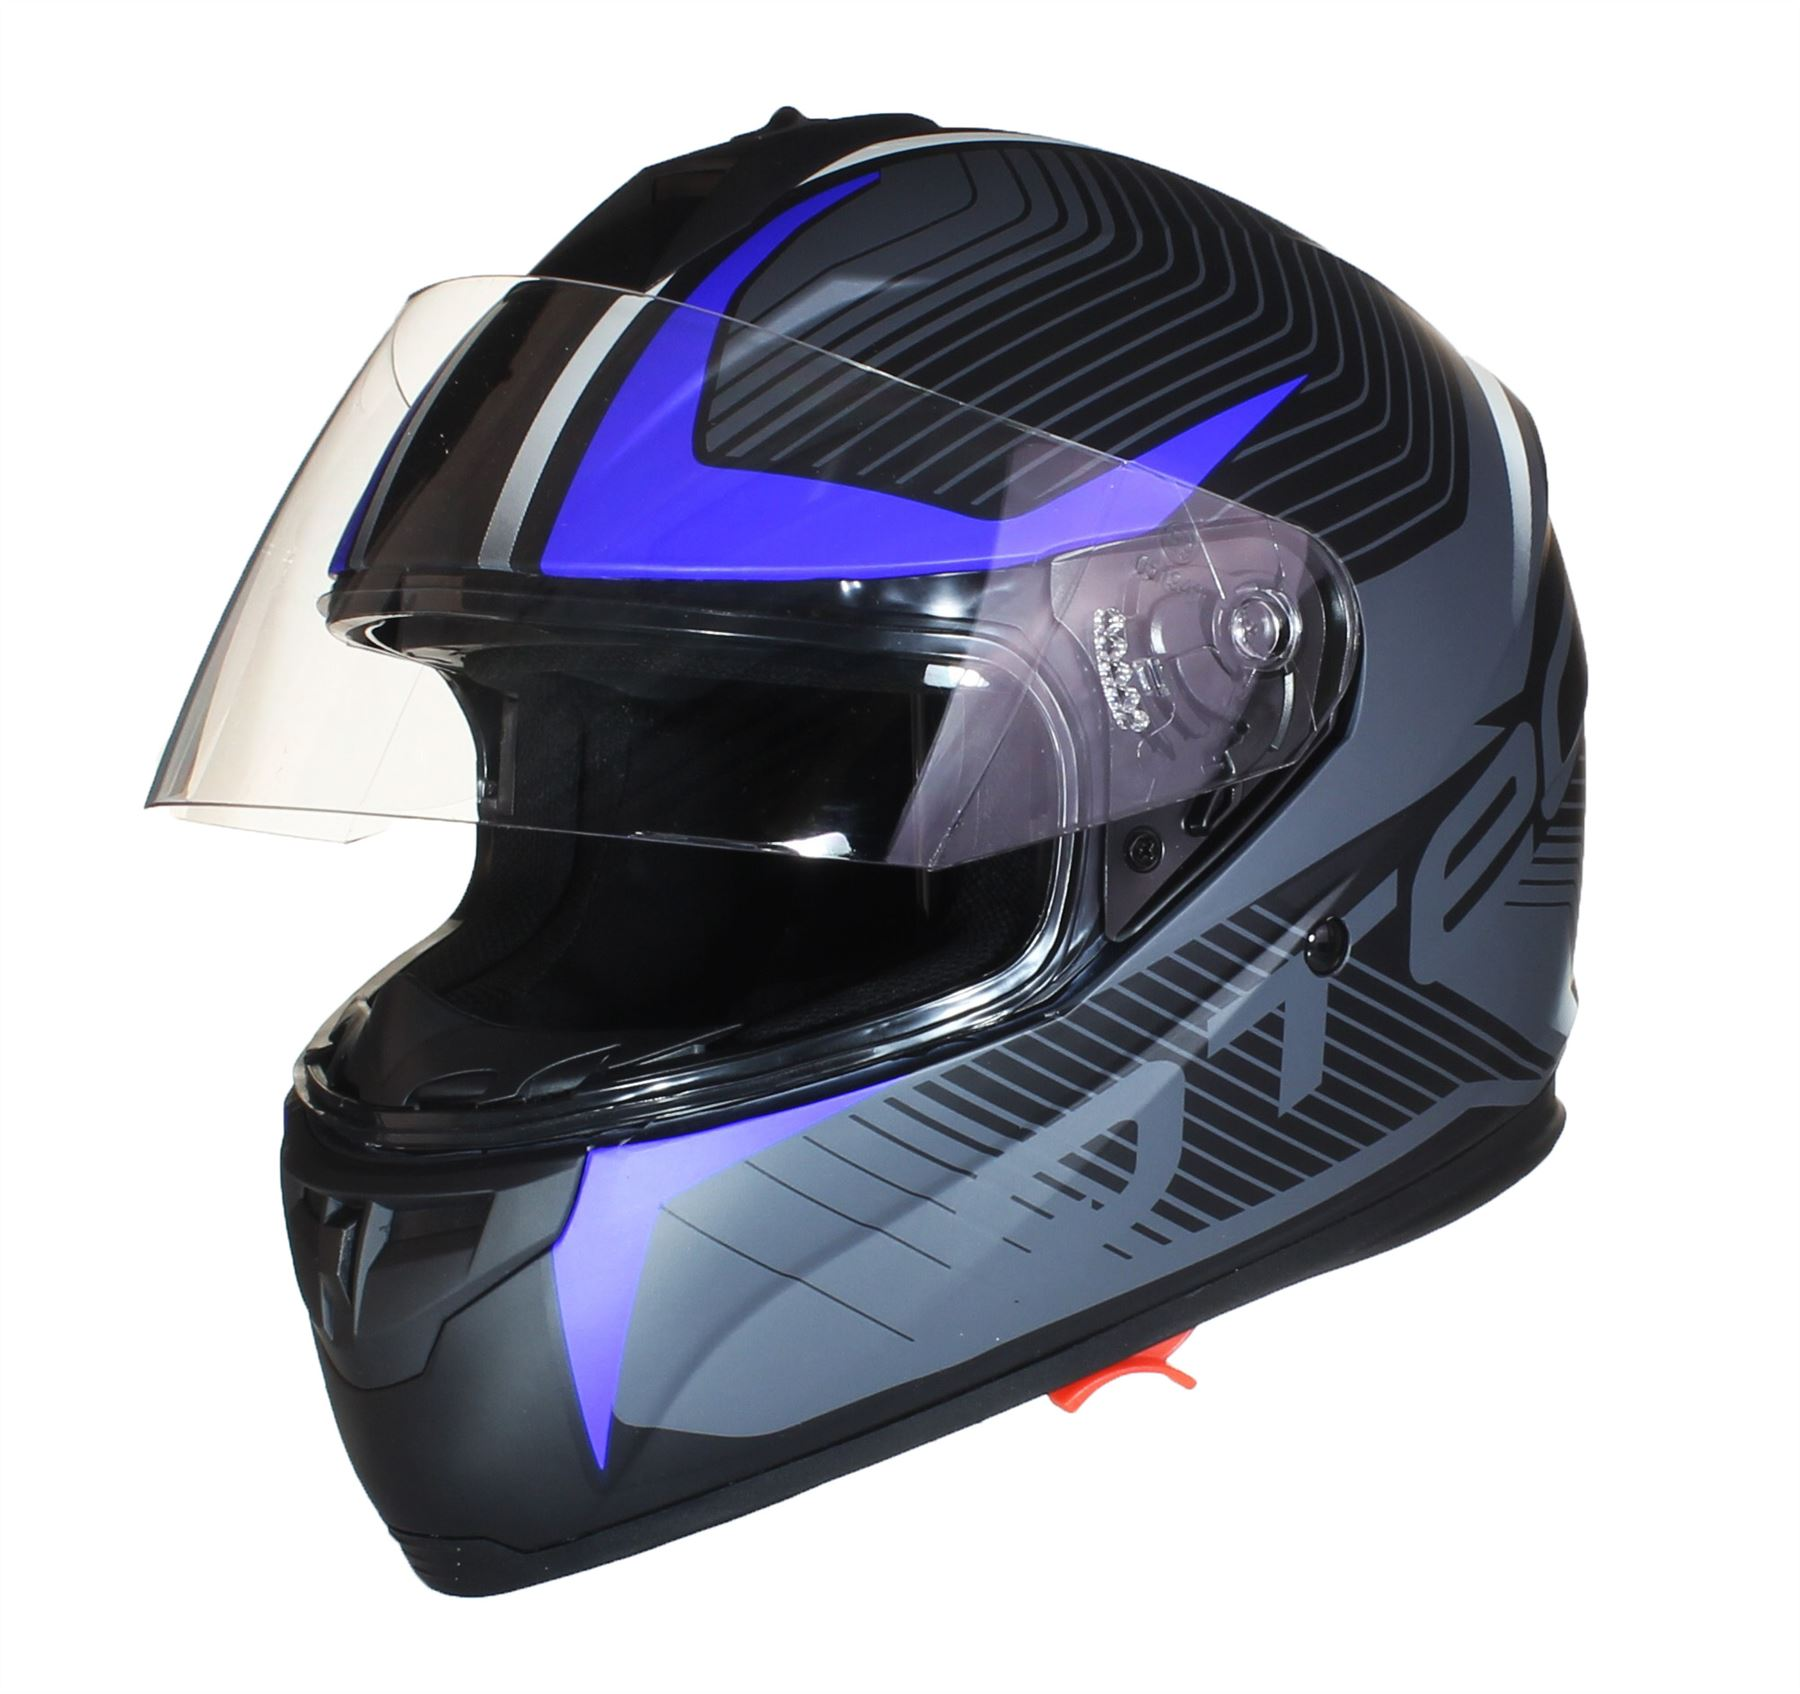 casque int gral double visi re moto scooter motard juridique route pare soleil ebay. Black Bedroom Furniture Sets. Home Design Ideas